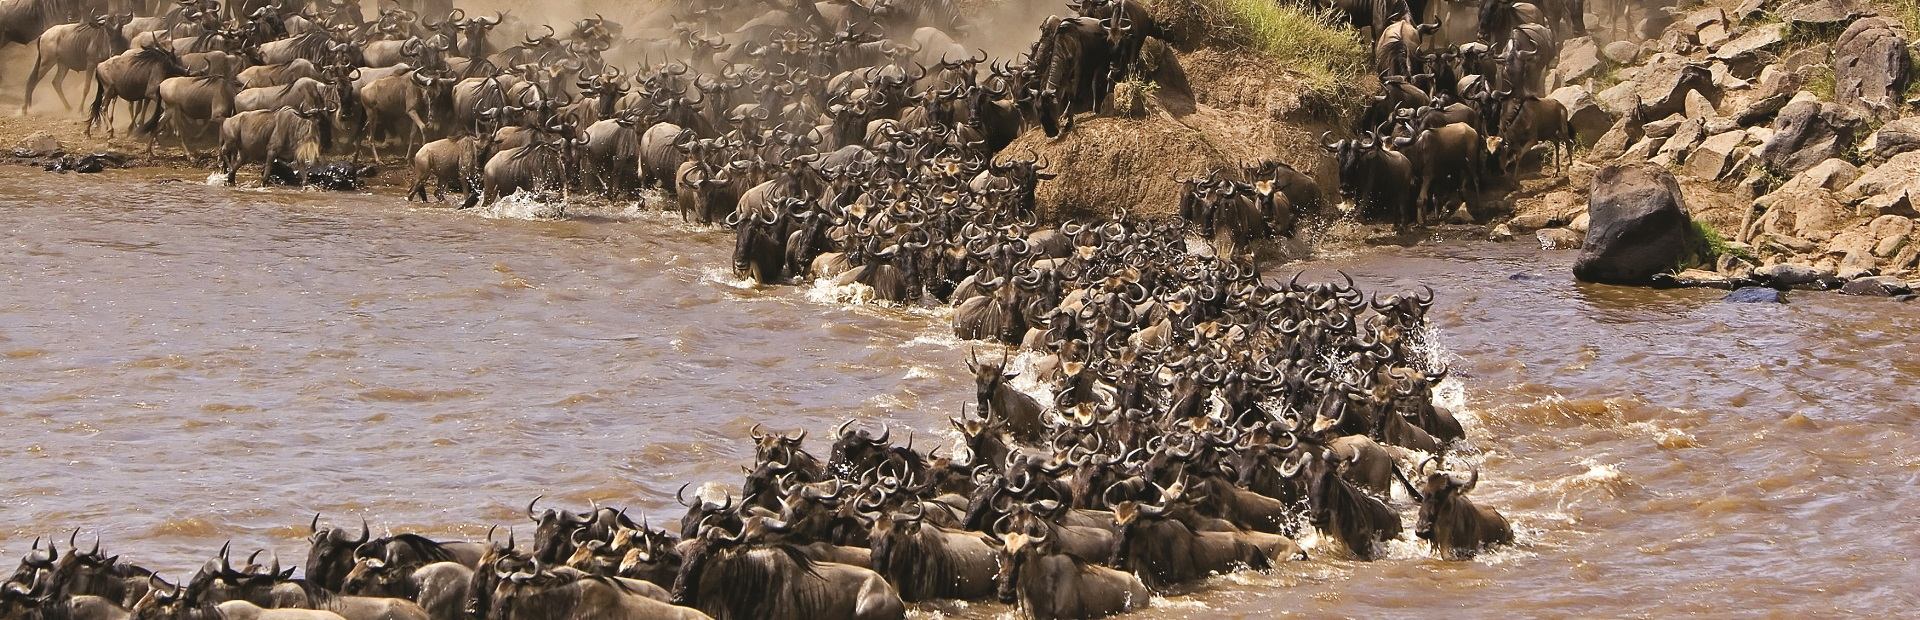 The-Wildebeest-Migration-Fun-Facts-about-the-Migration